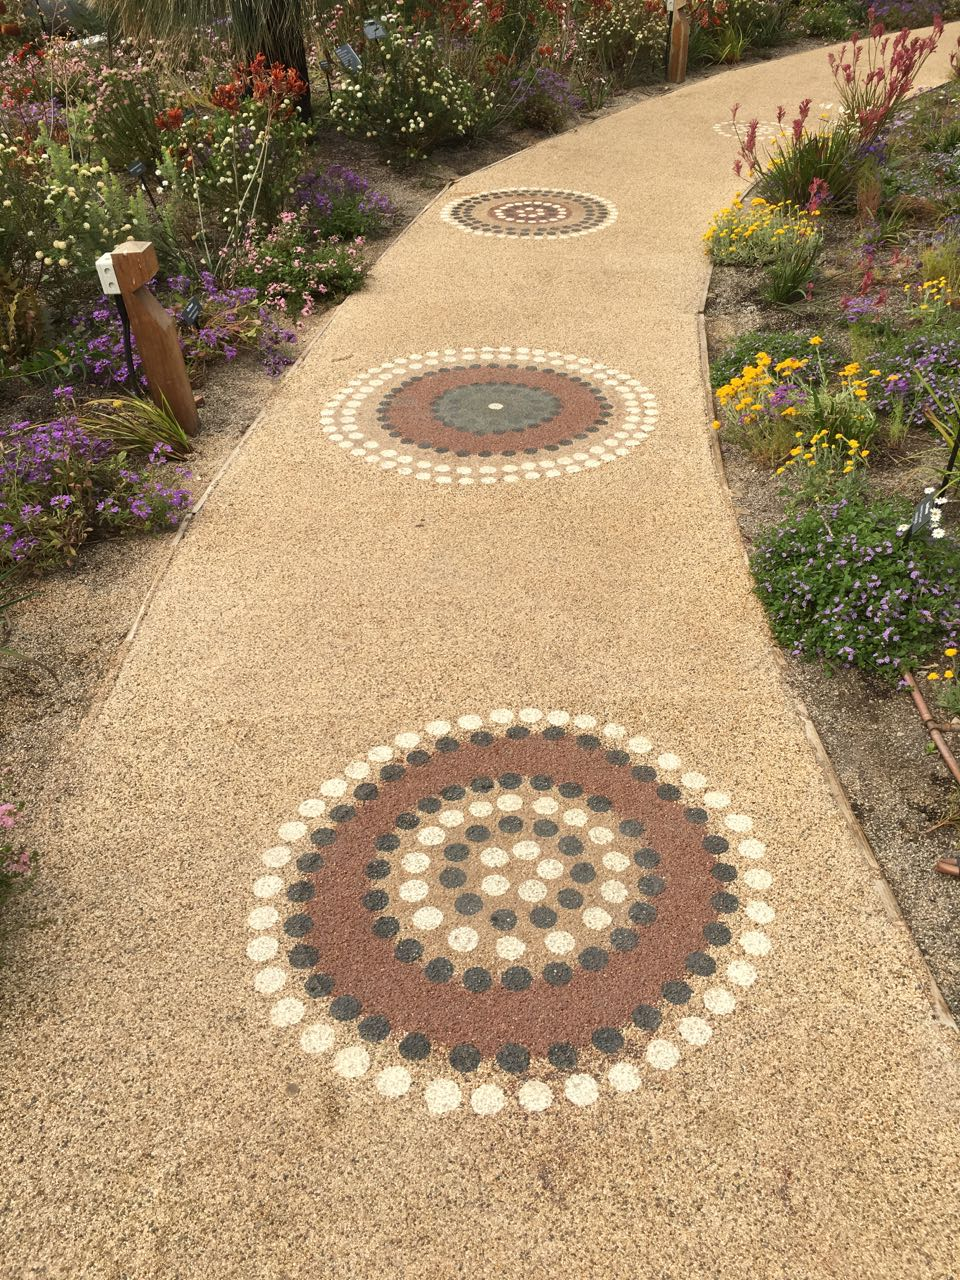 Aboriginal artwork in the Western Australia Garden